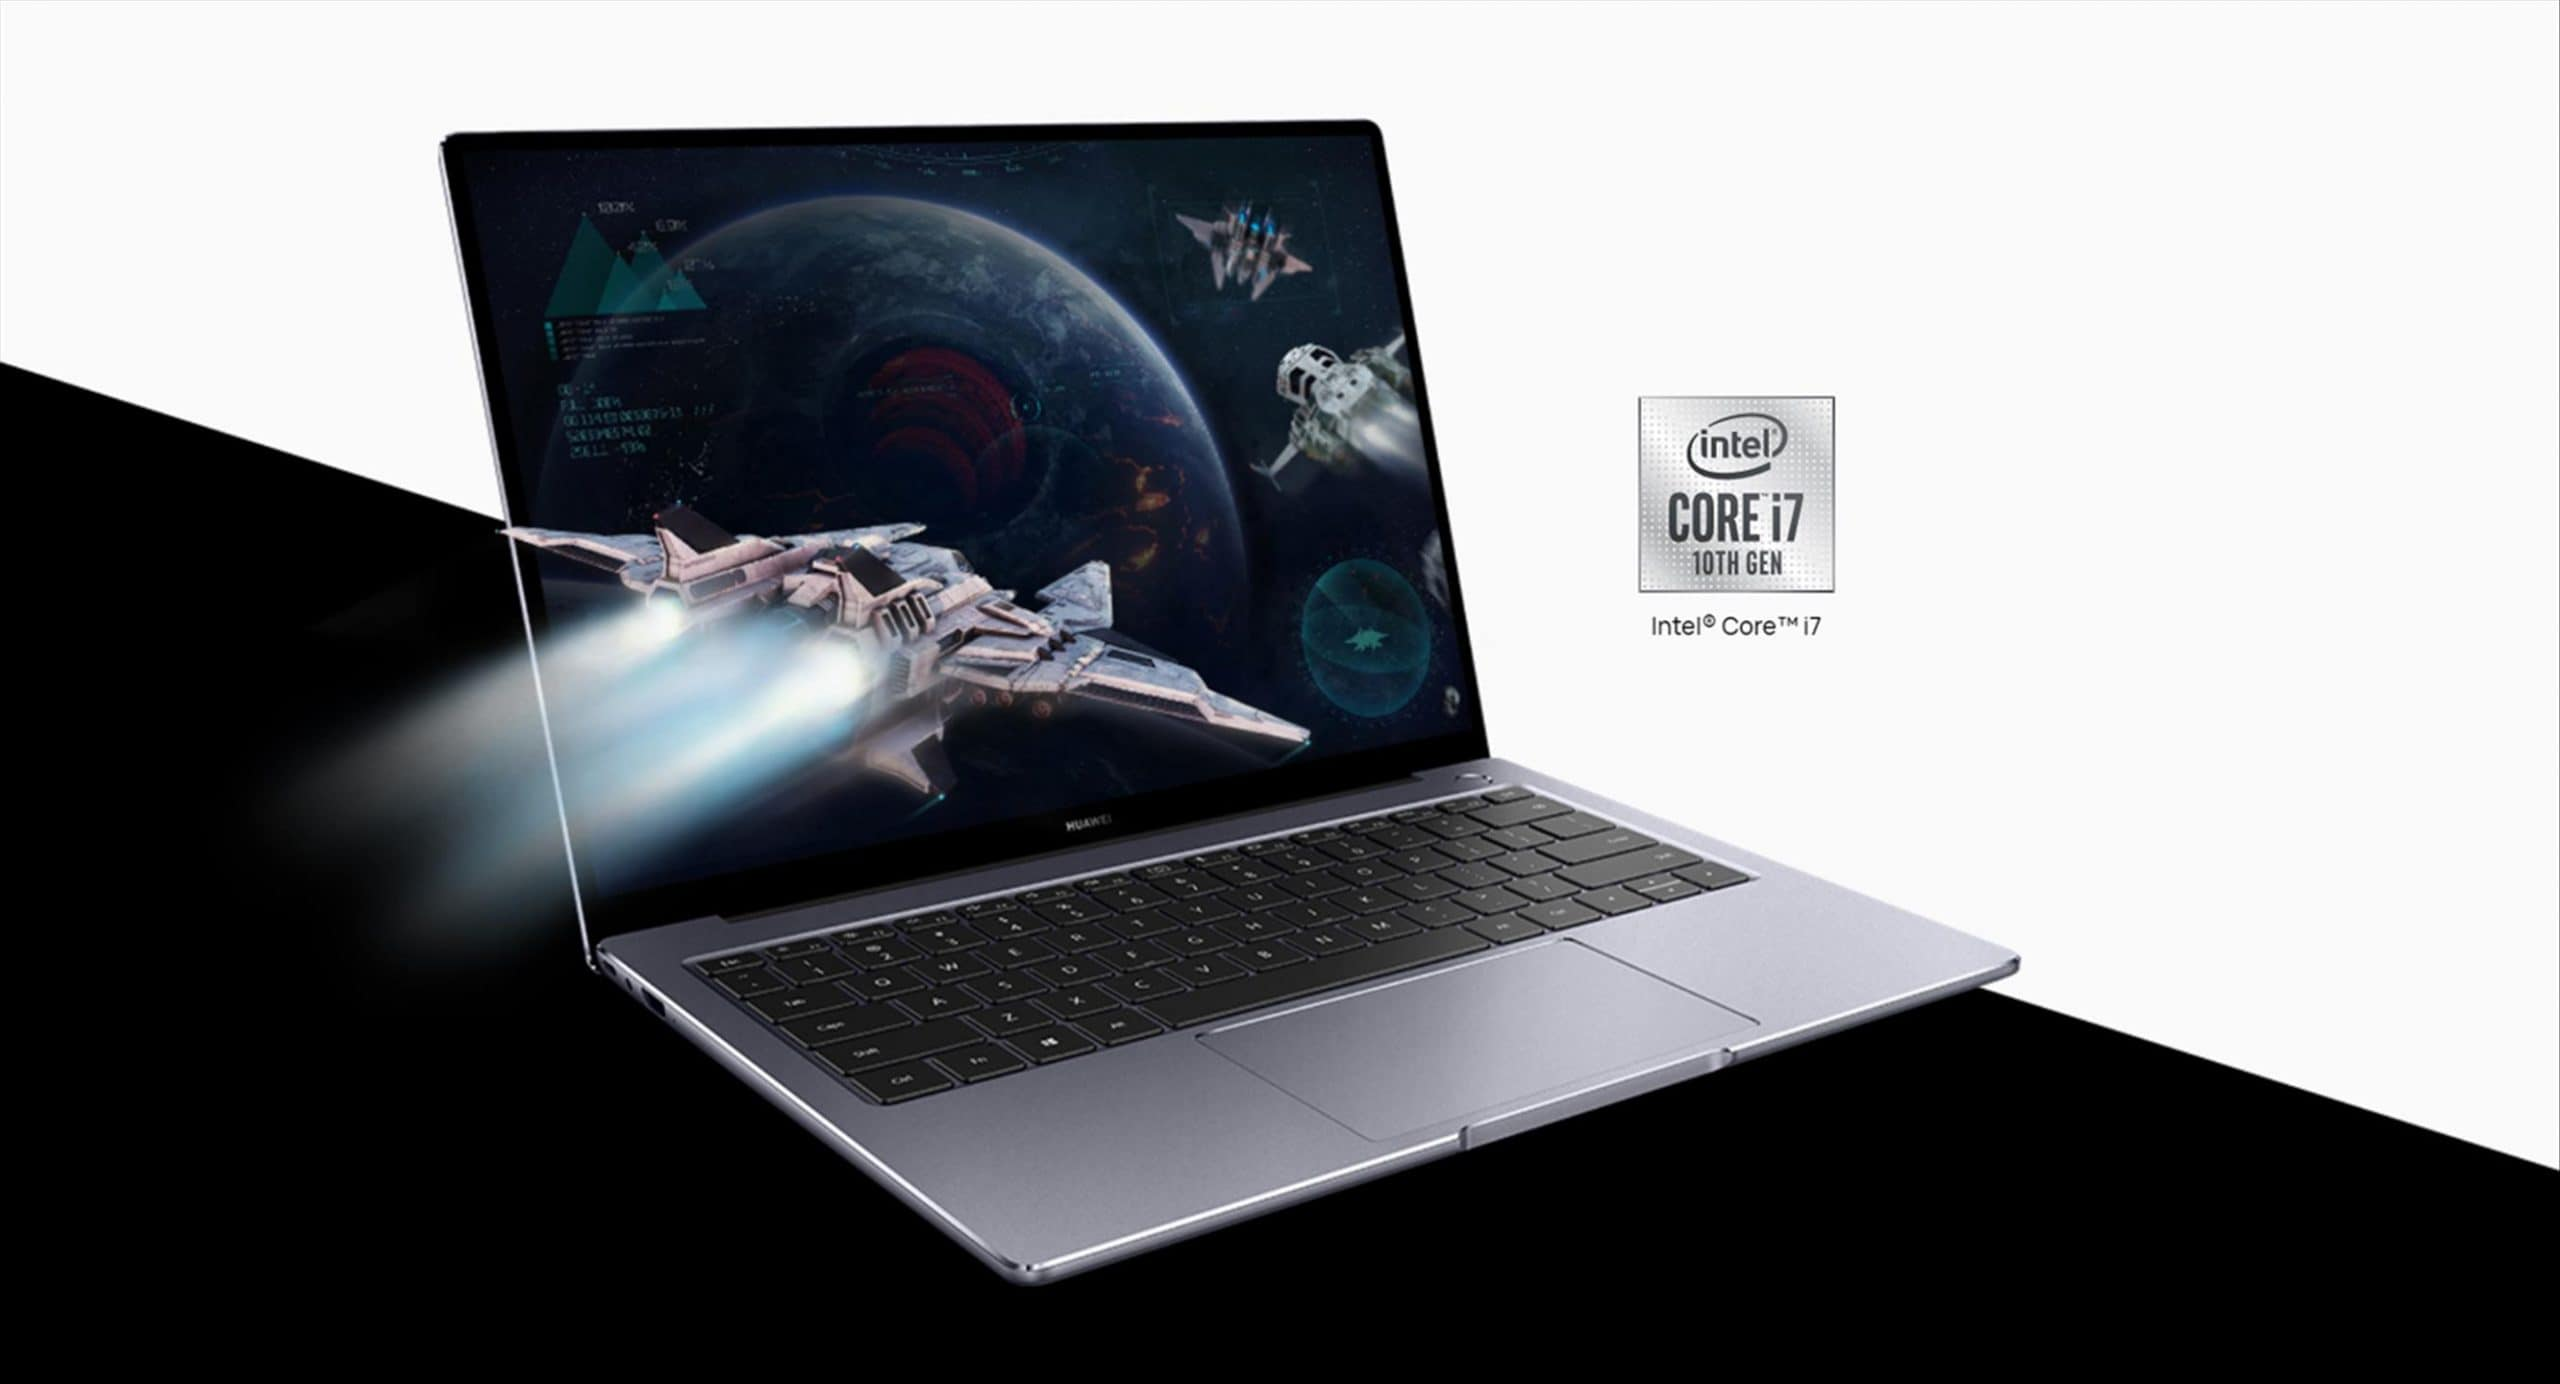 HUAWEI MateBook 14 (2020) has officially launched in Australia